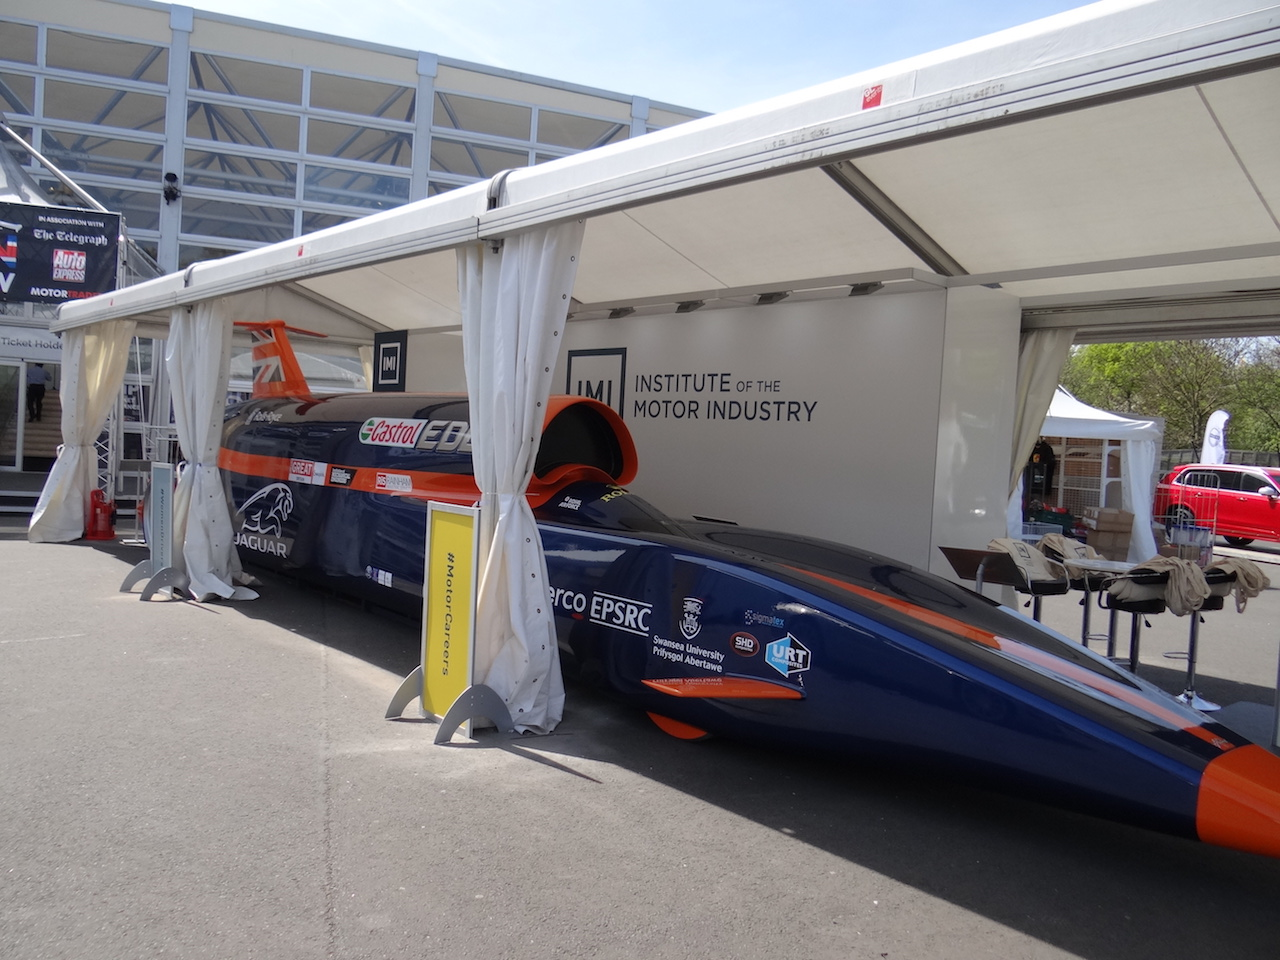 Britain's hope for a new Land Speed record rests with 'Bloodhound', seen here on display at the London Motor Show at Battersea.